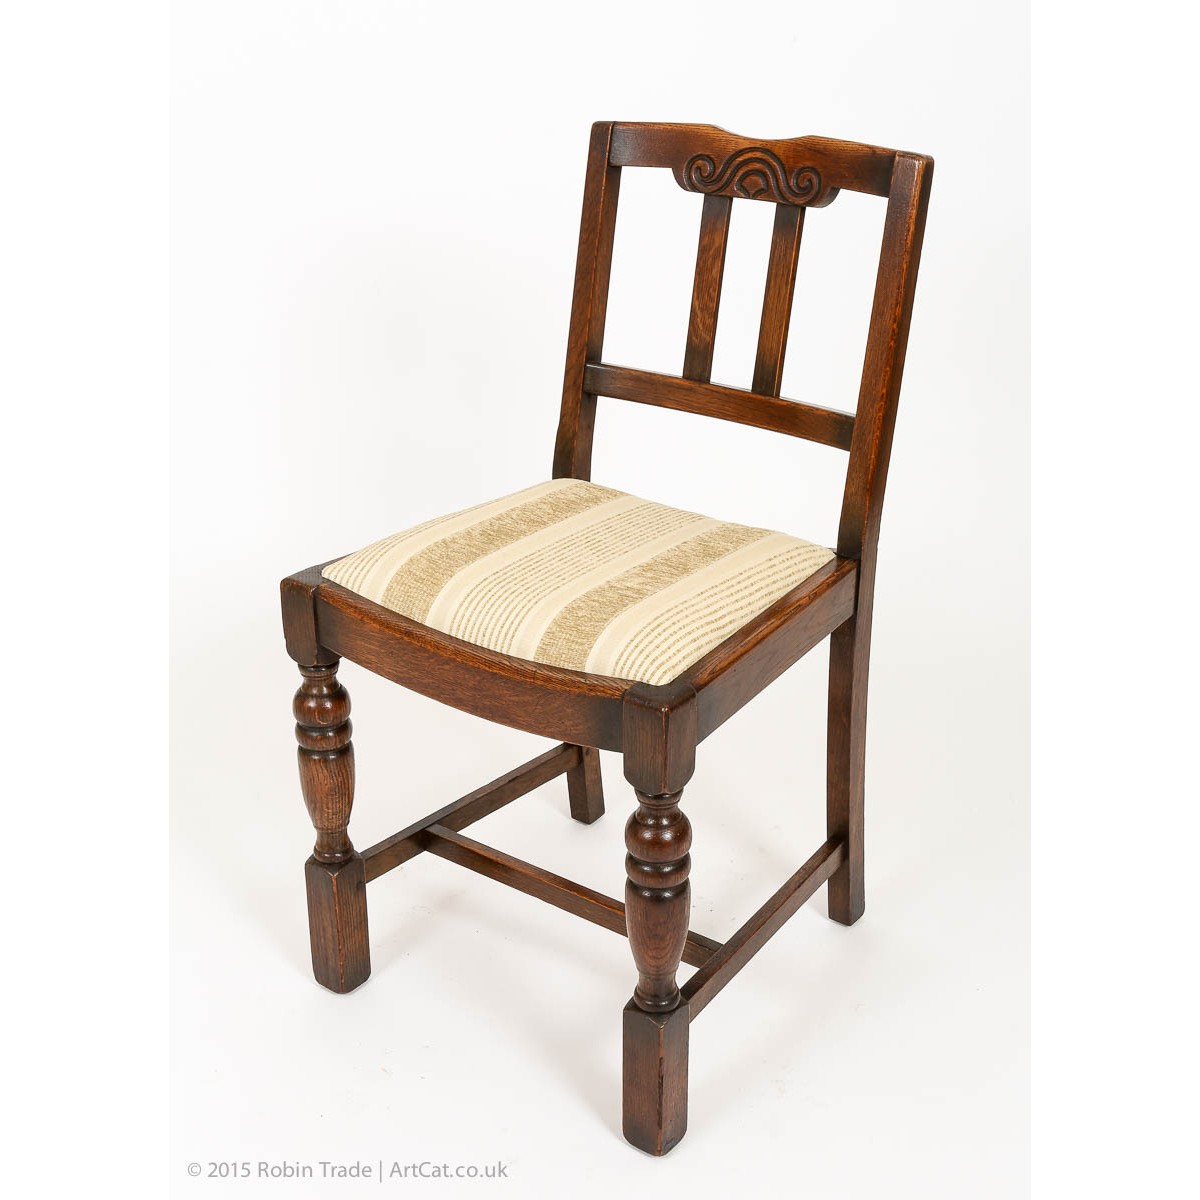 Arts and crafts chairs - Arts And Craft Chairs Antique Arts And Crafts Small Oak Dining Chairs With Turned Legs